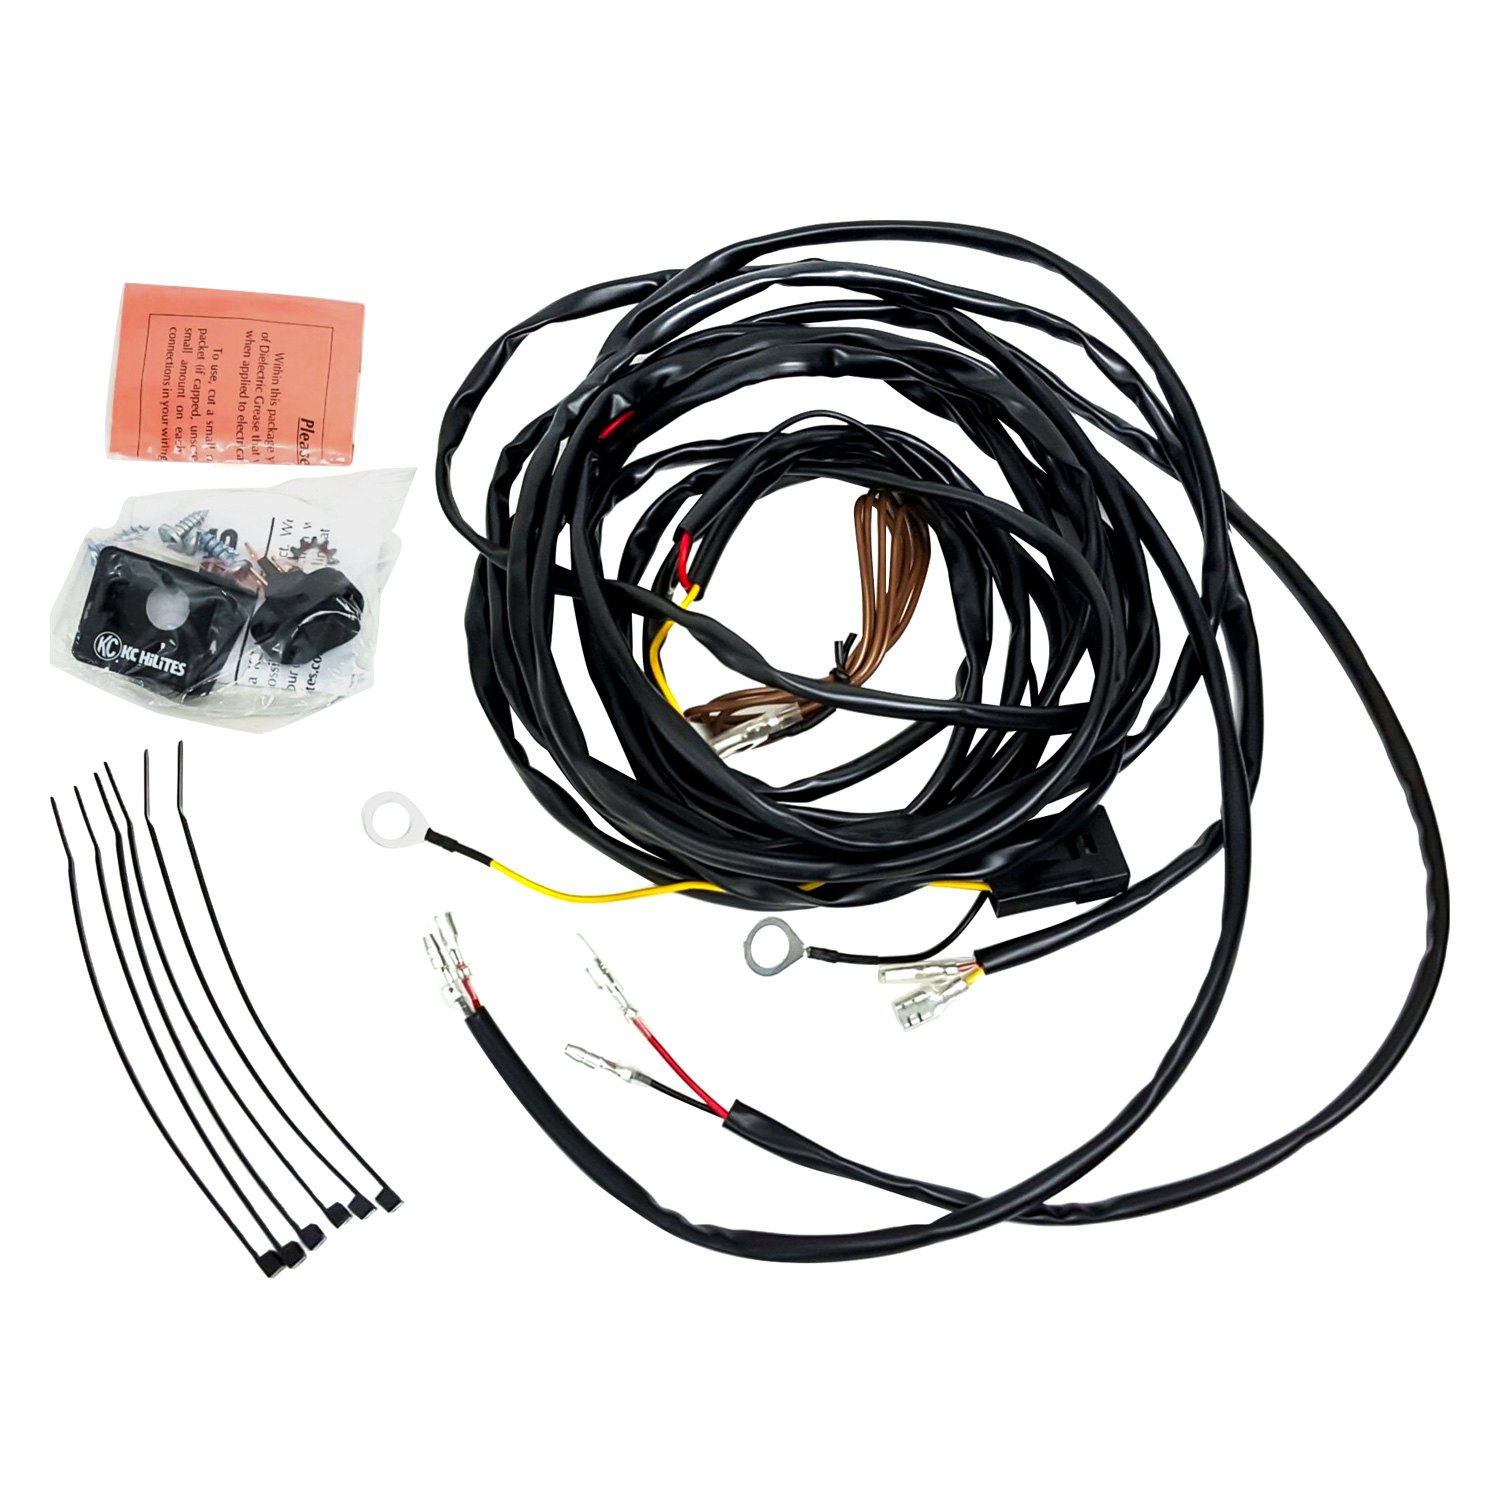 Kc 6308 Wiring Harness Reinvent Your Diagram Jeep Lights Electrical Schematics Rh Culturetearoom Com Boat Ford